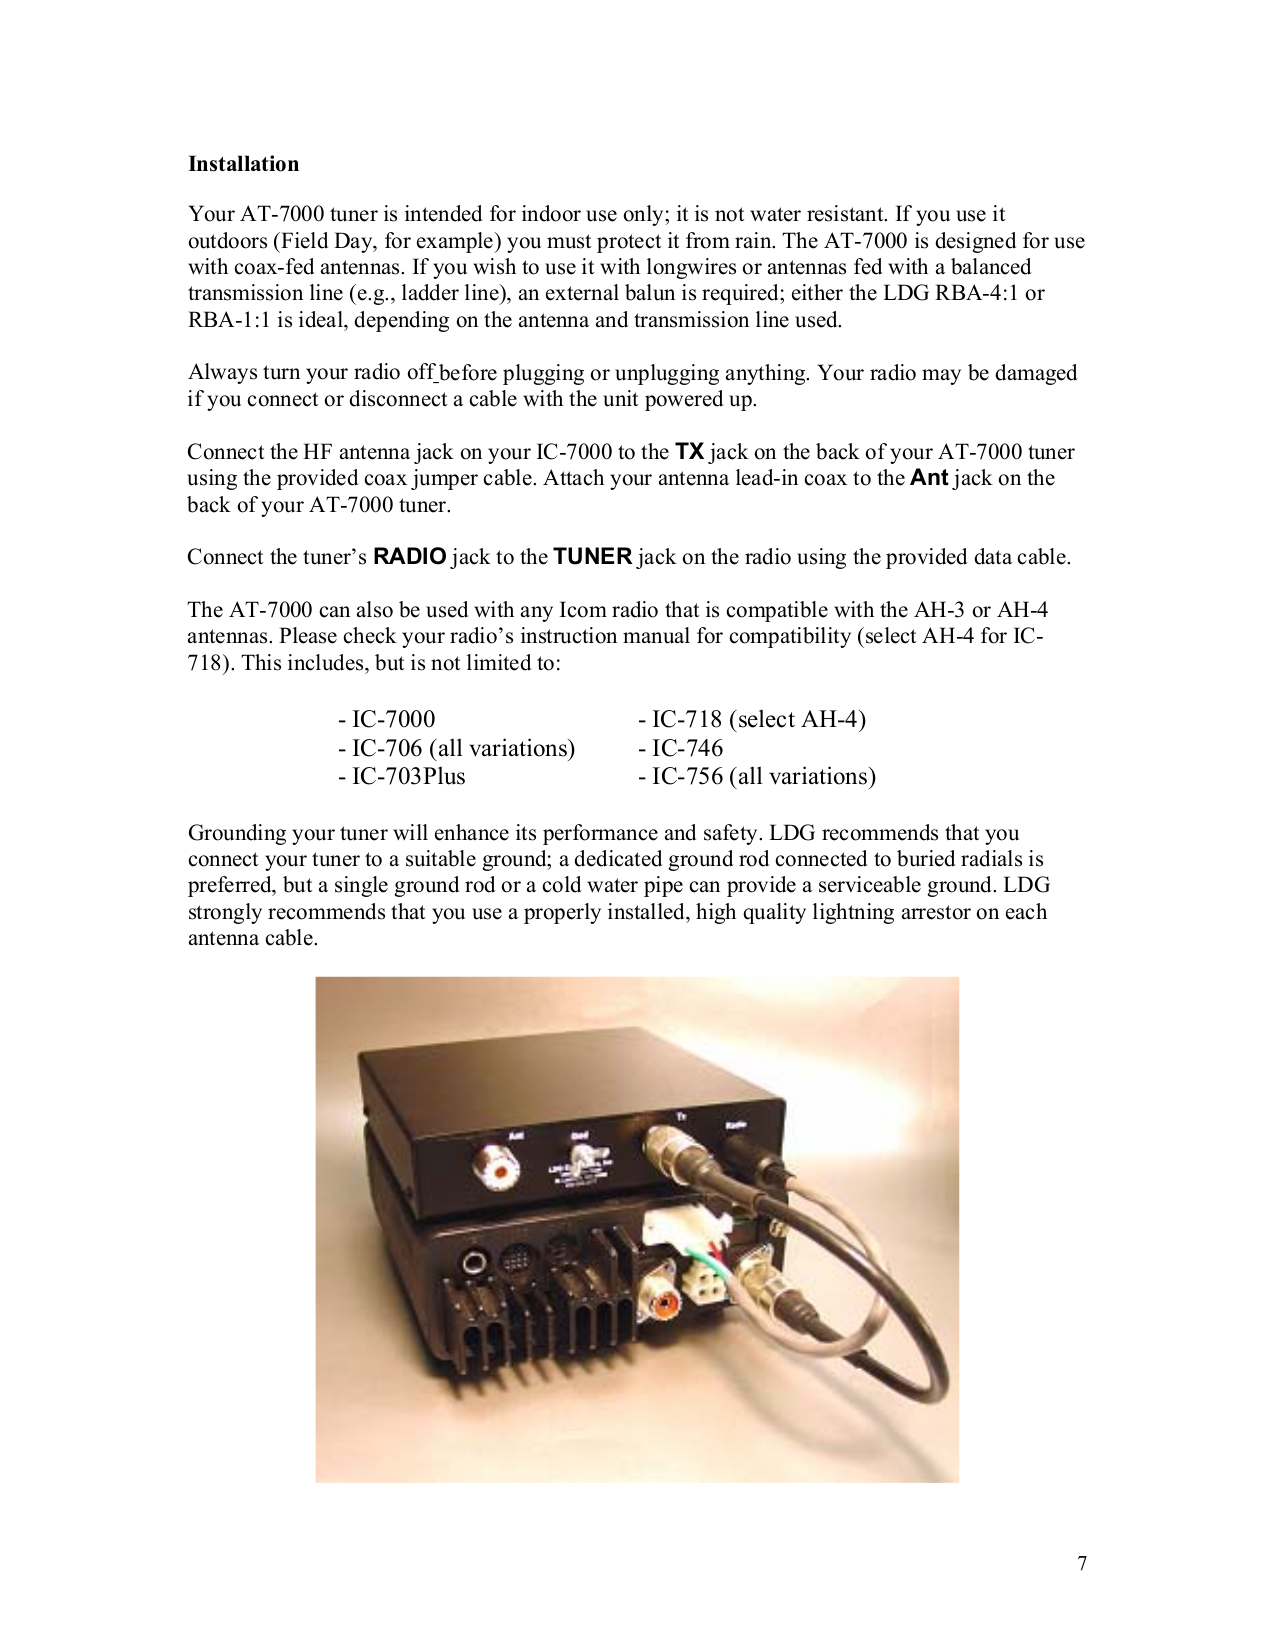 PDF manual for ICOM Other AH-4 Antenna Tuner